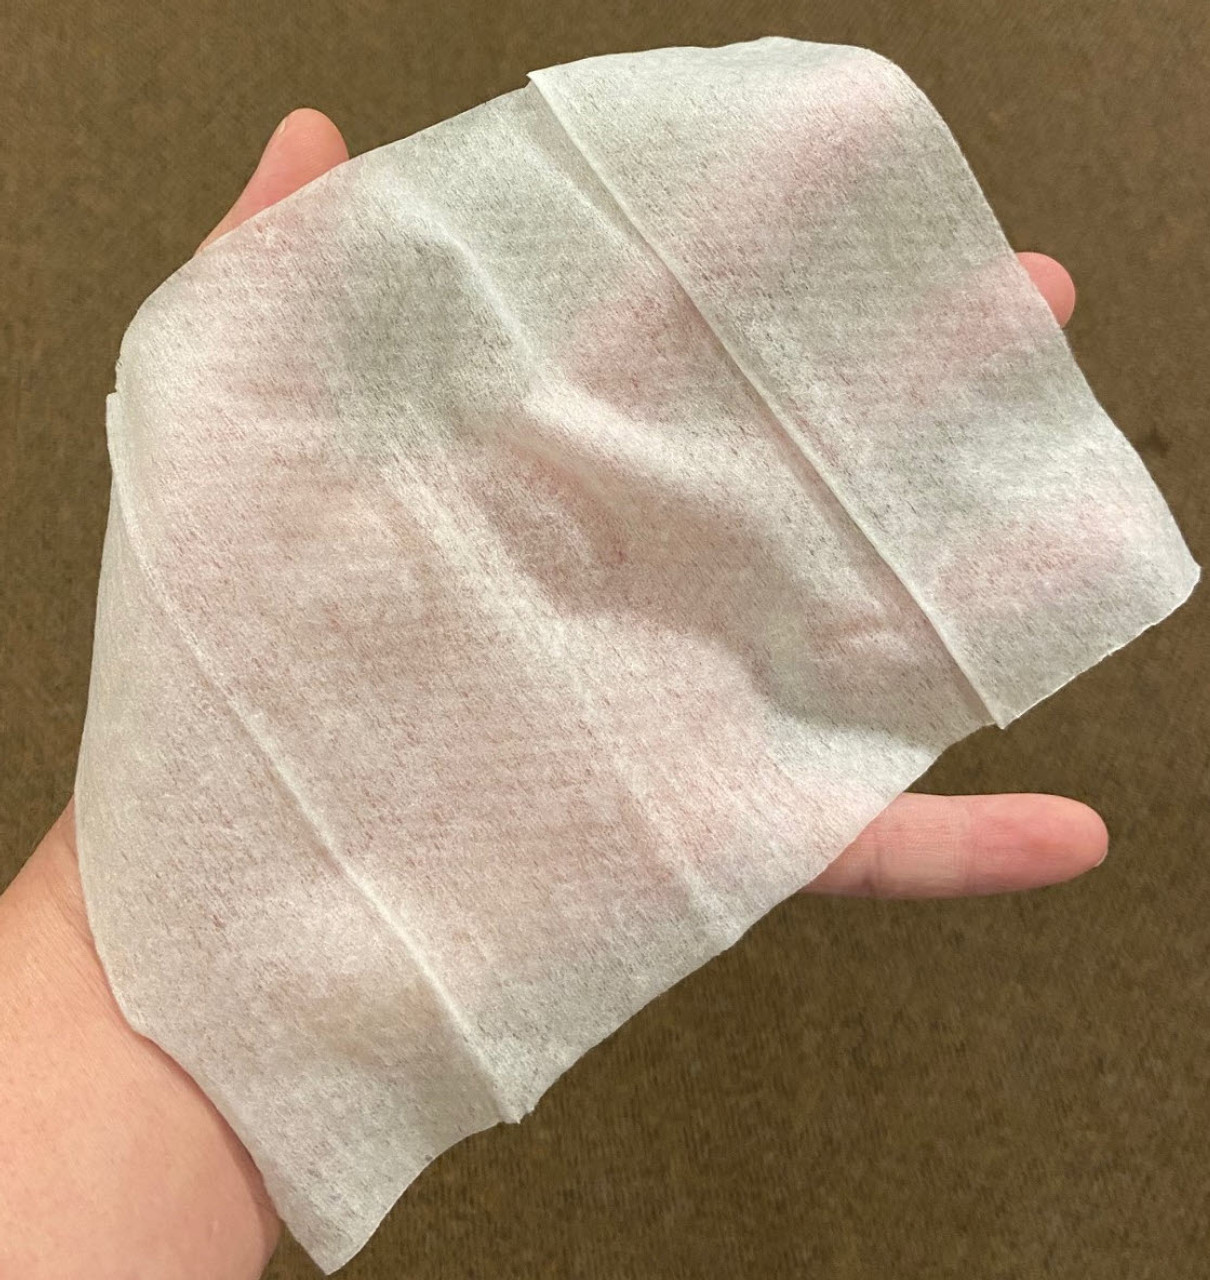 75% Alcohol Wipe in hand